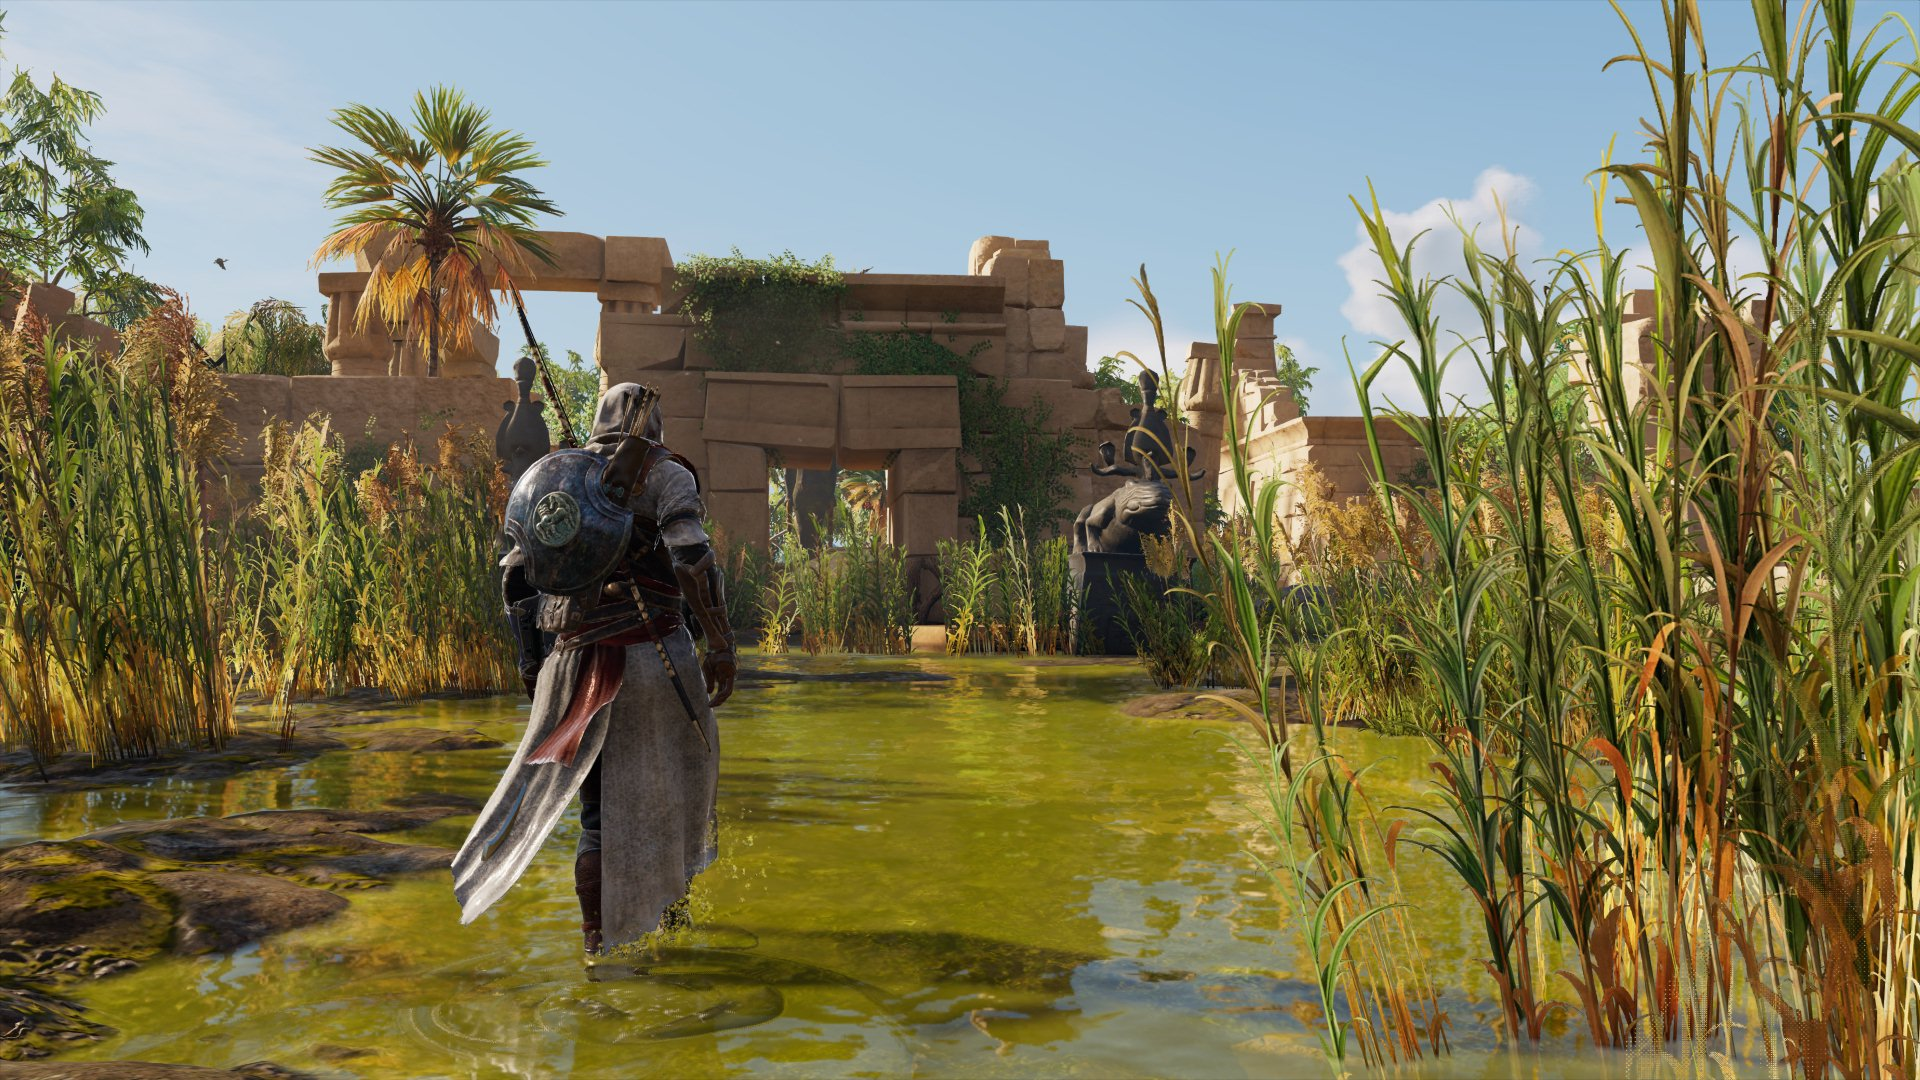 20180214015812.jpg - Assassin's Creed: Origins